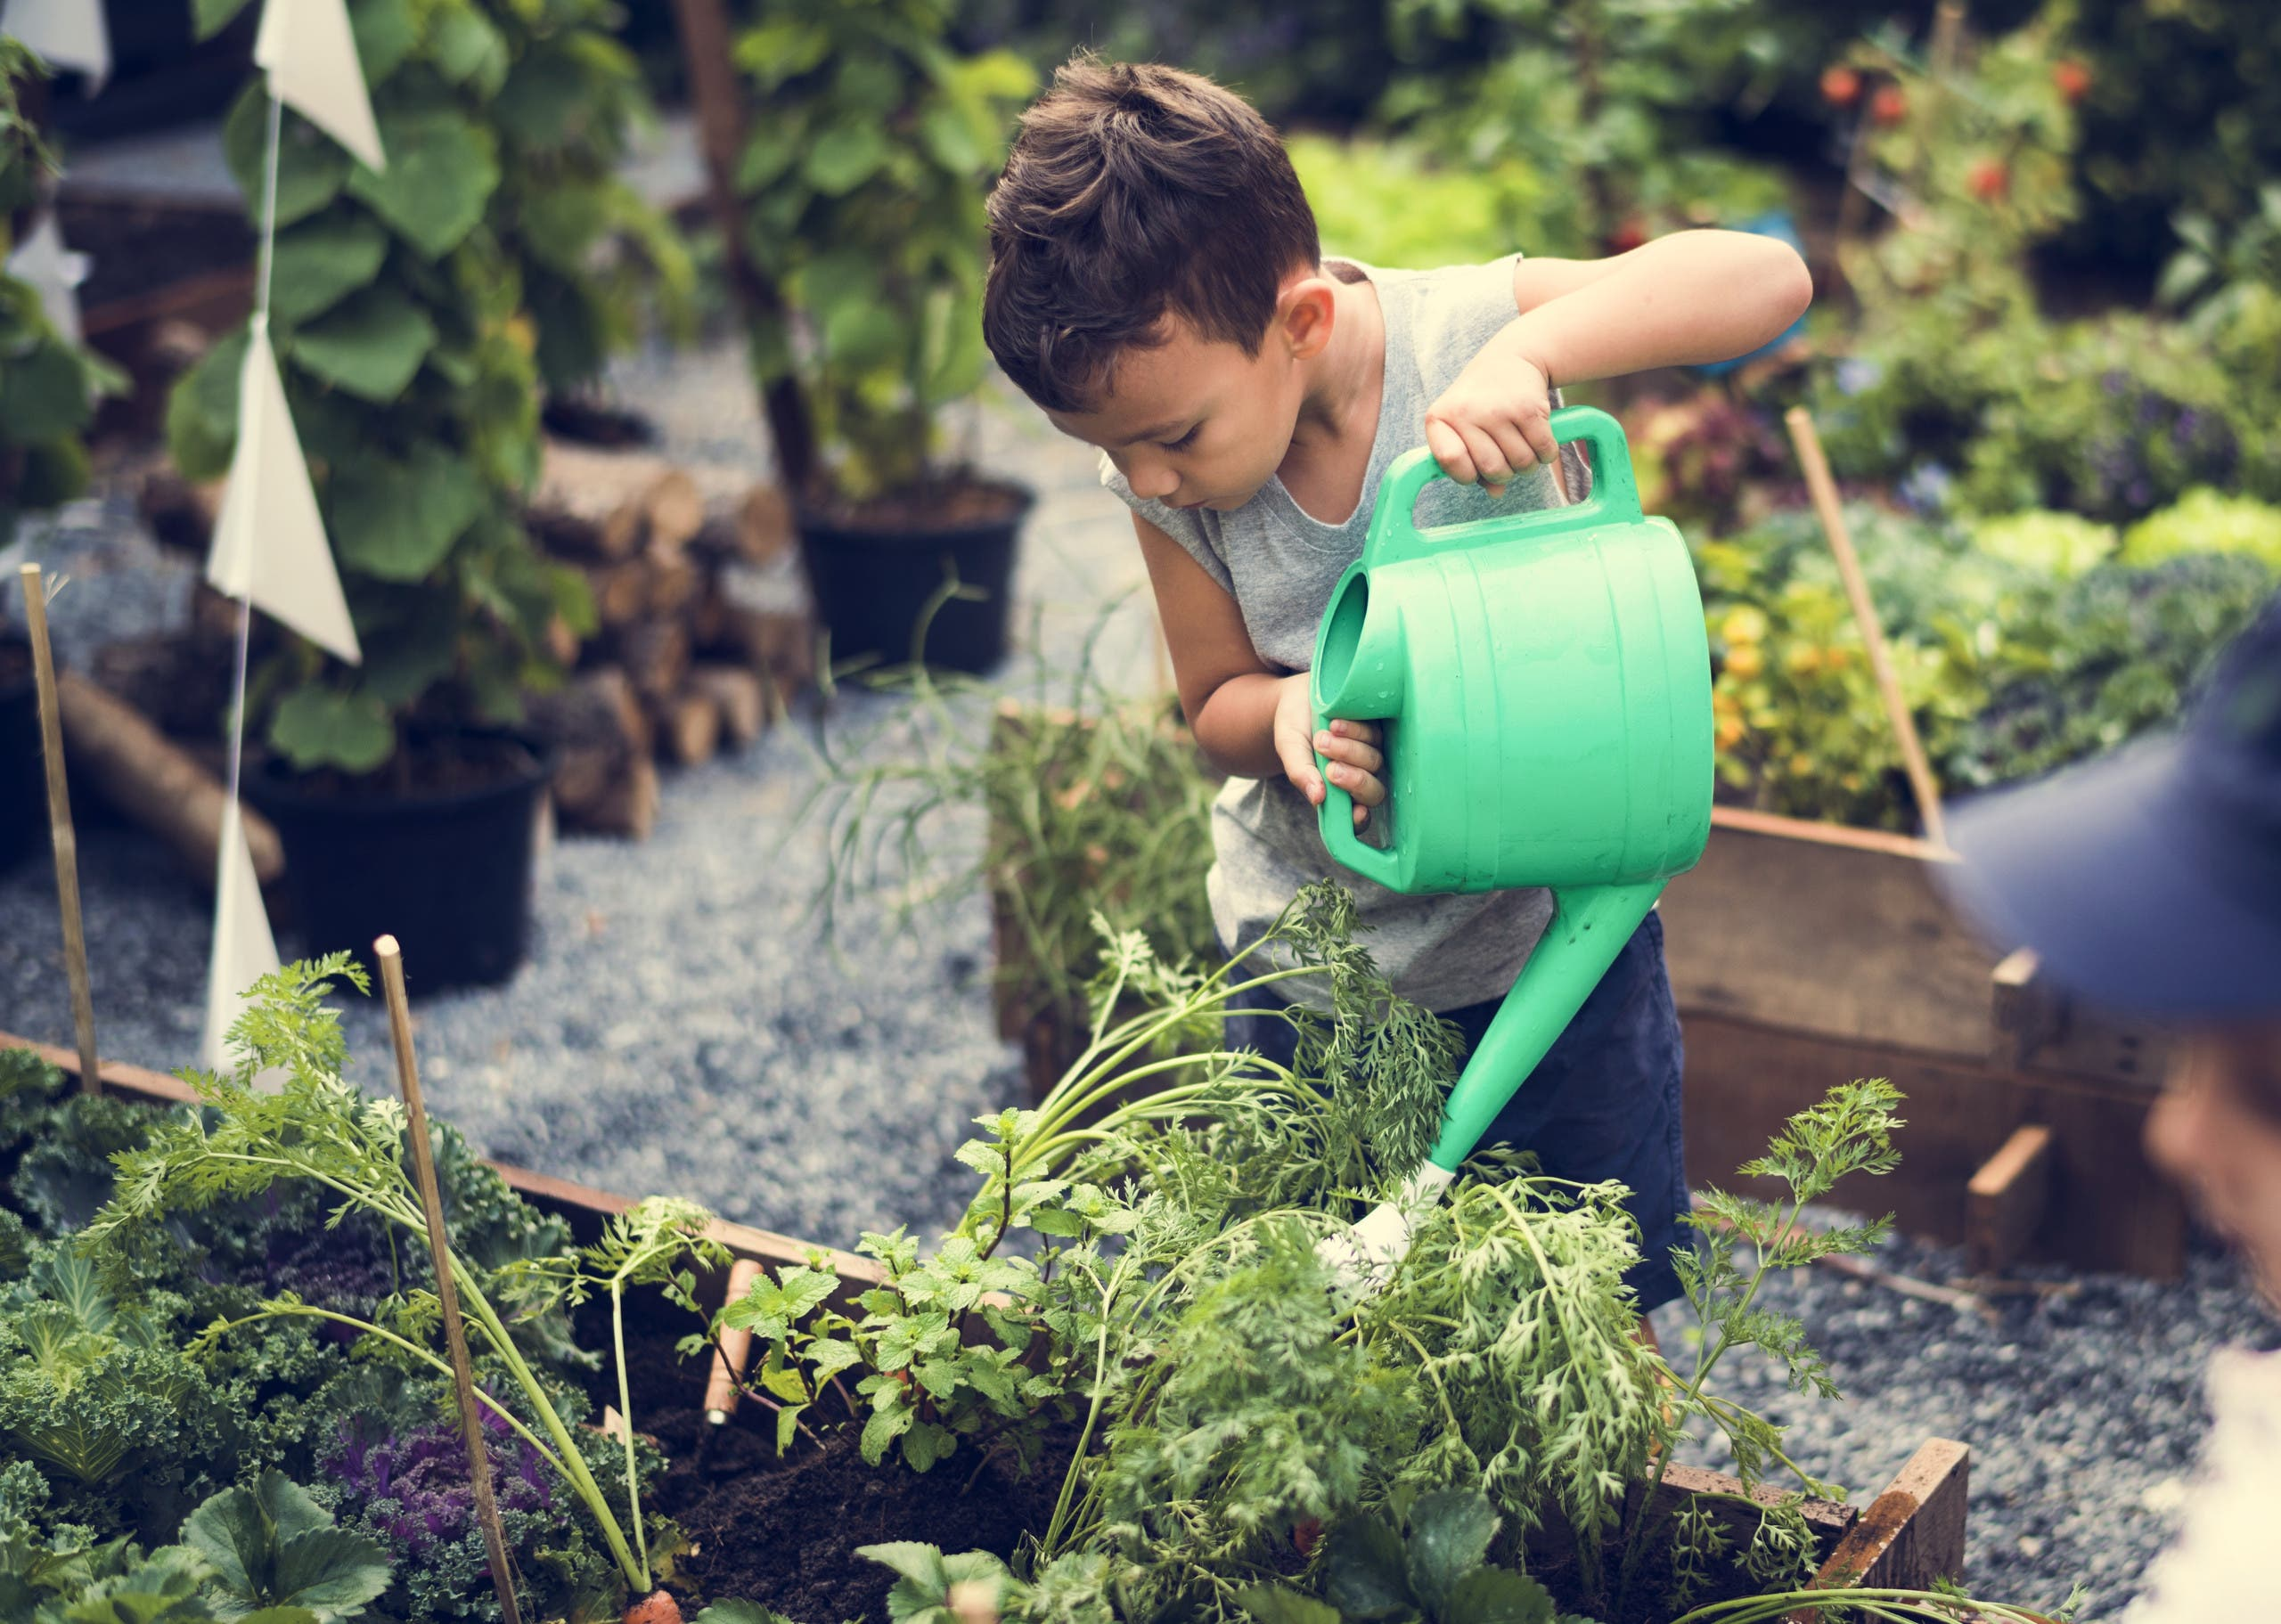 Children are in the garden watering the plants. (Shutterstock)